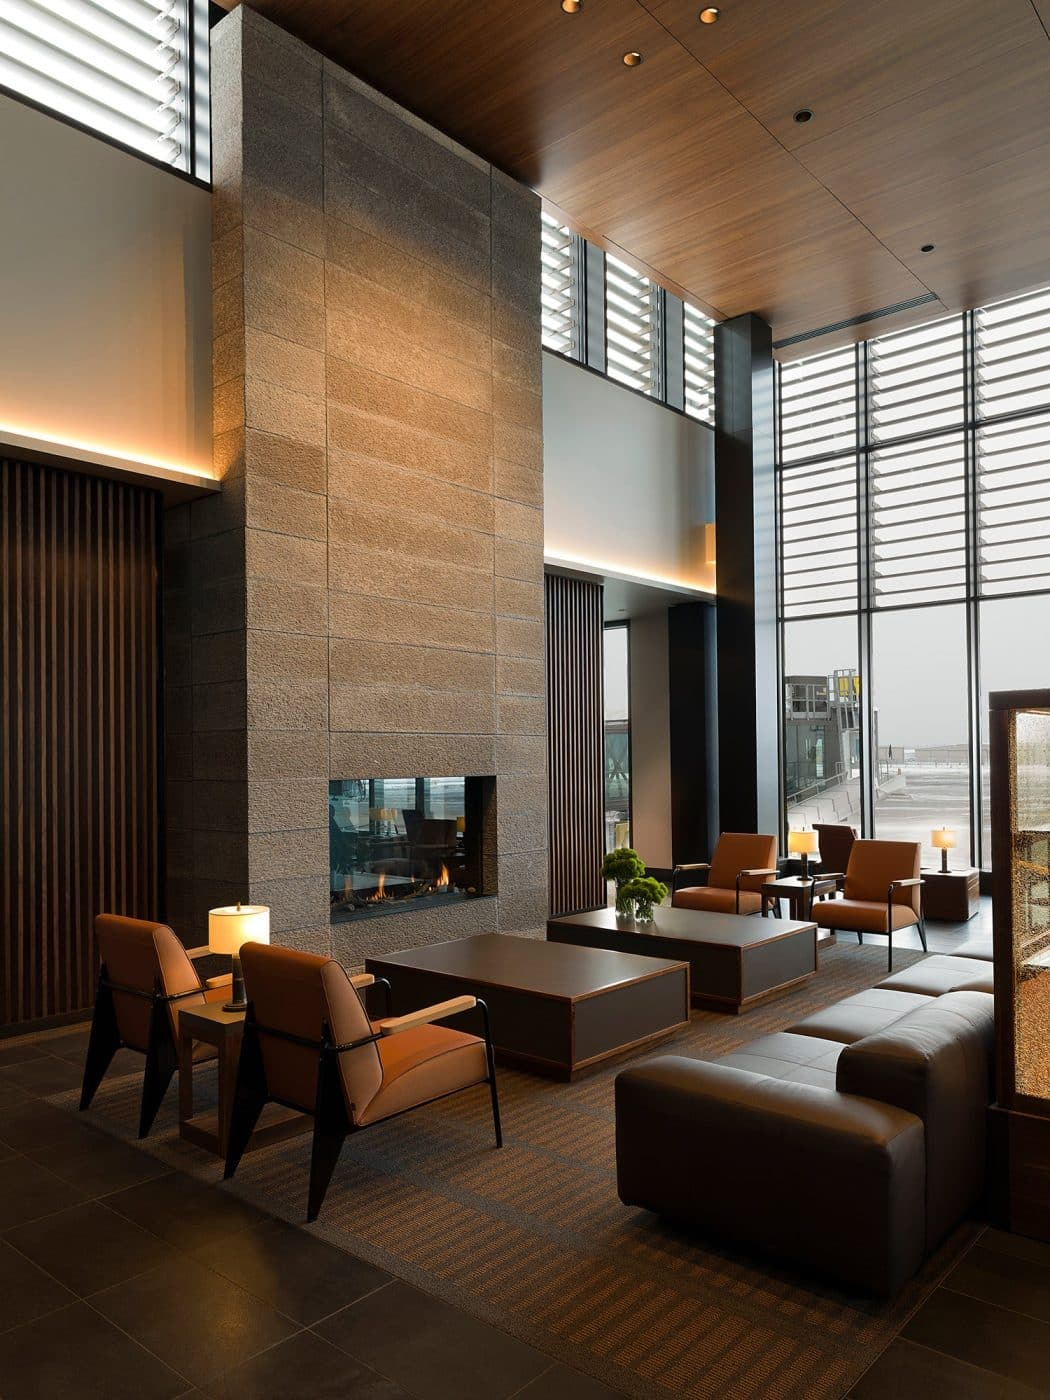 Private airport lobby in Seattle, designed by Clive Lonstein